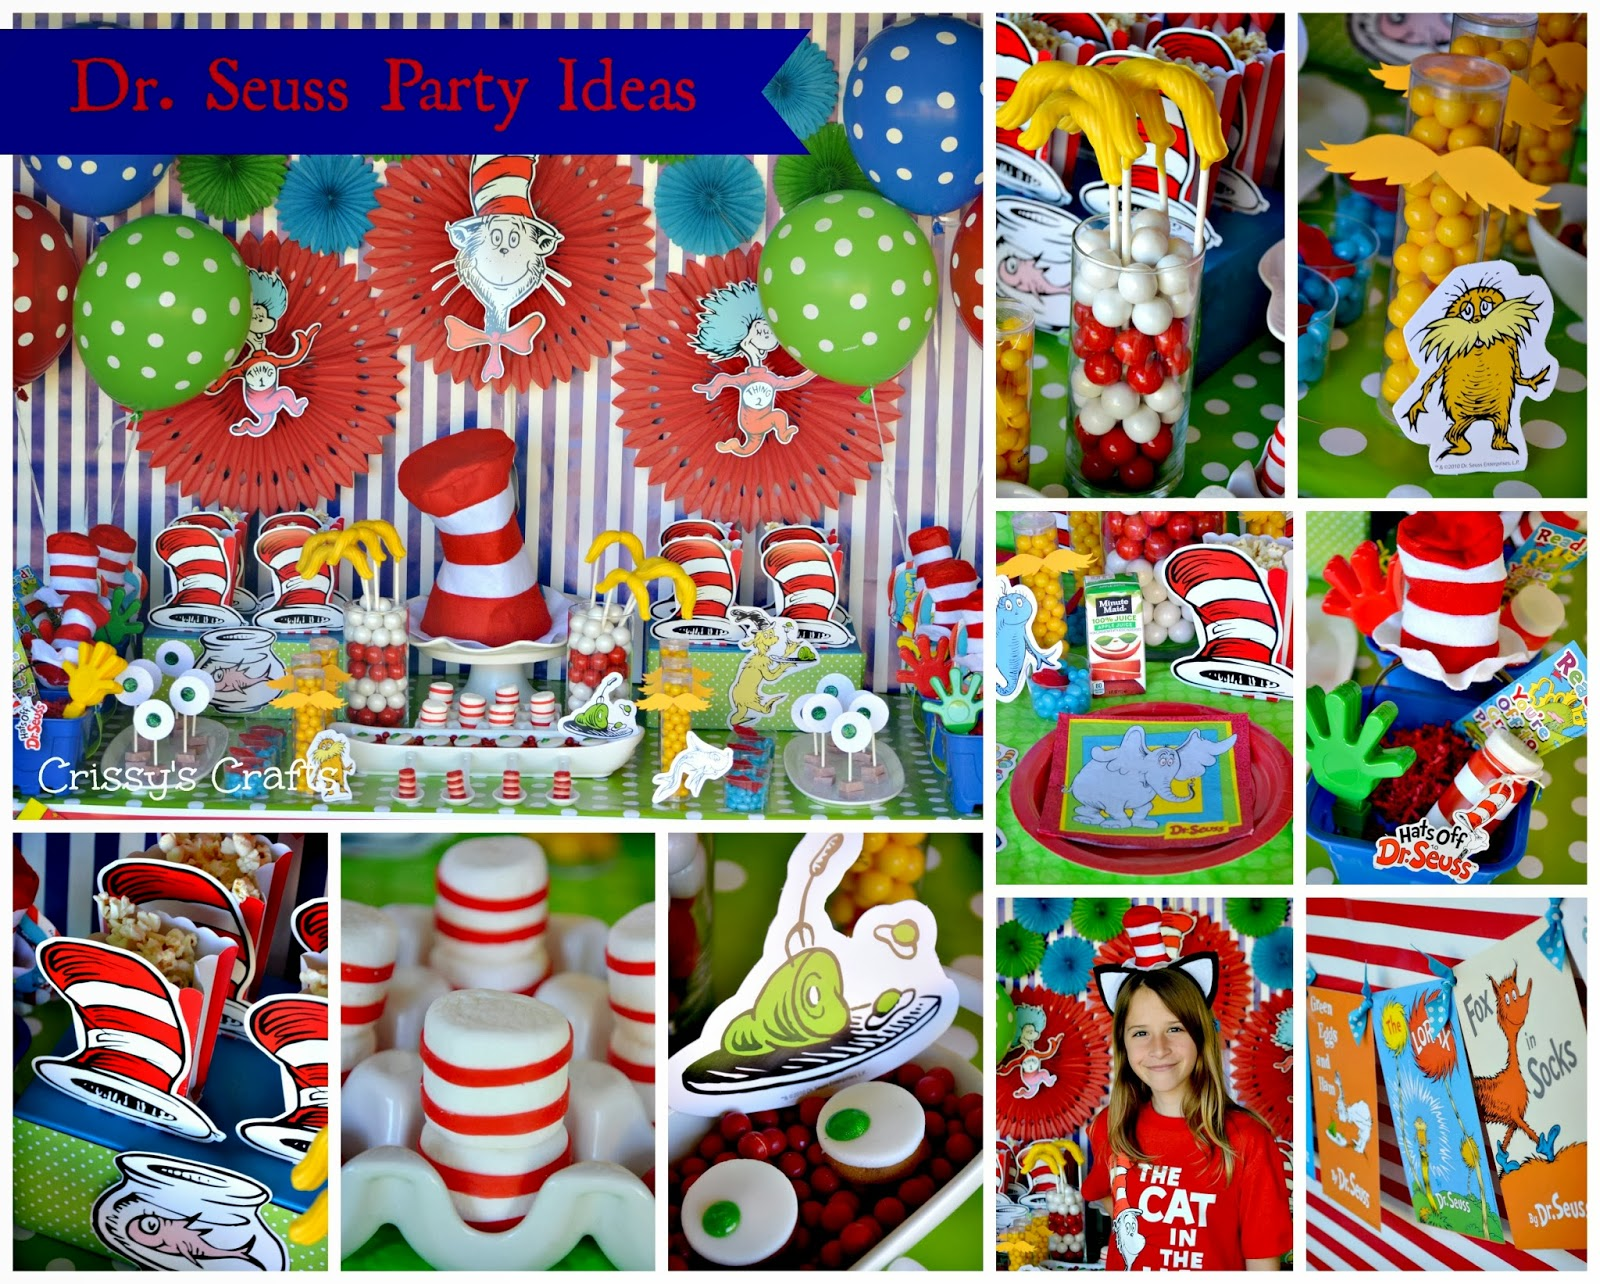 Crissys Crafts Dr Seuss Party Ideas and Snacks